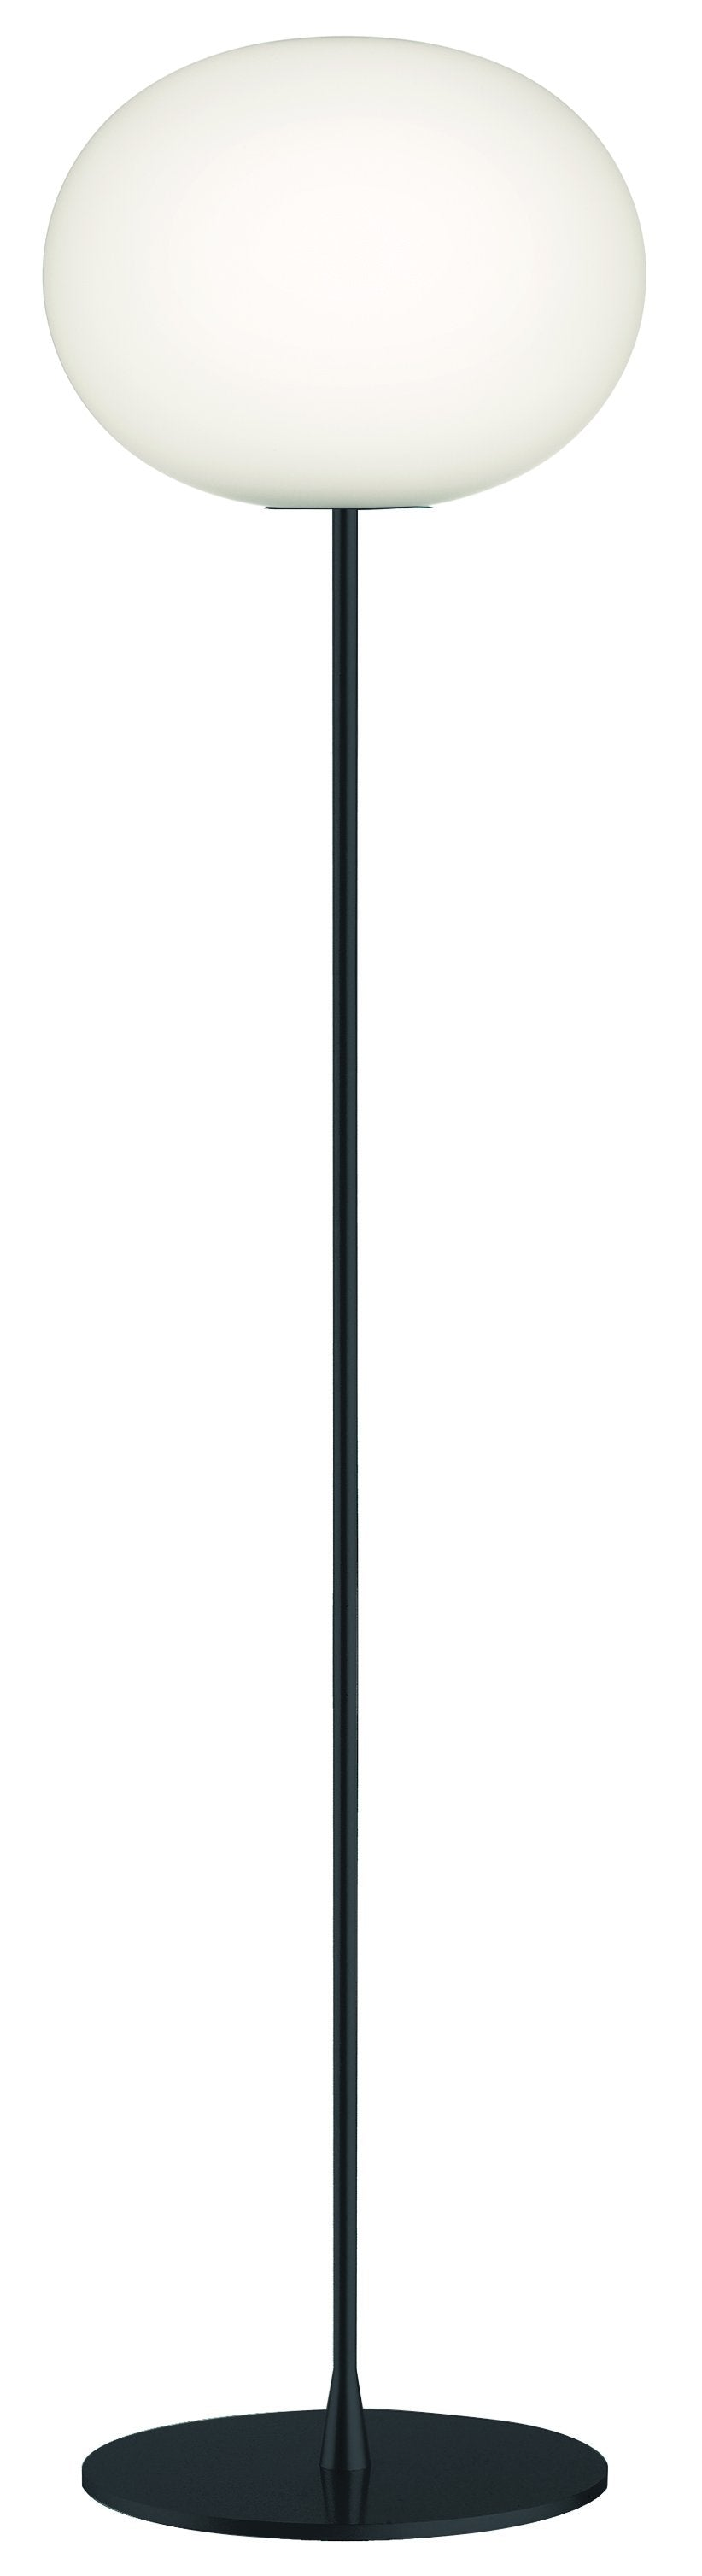 FLOS Glo-Ball F3 Floor Lamp In MA - ID 1389